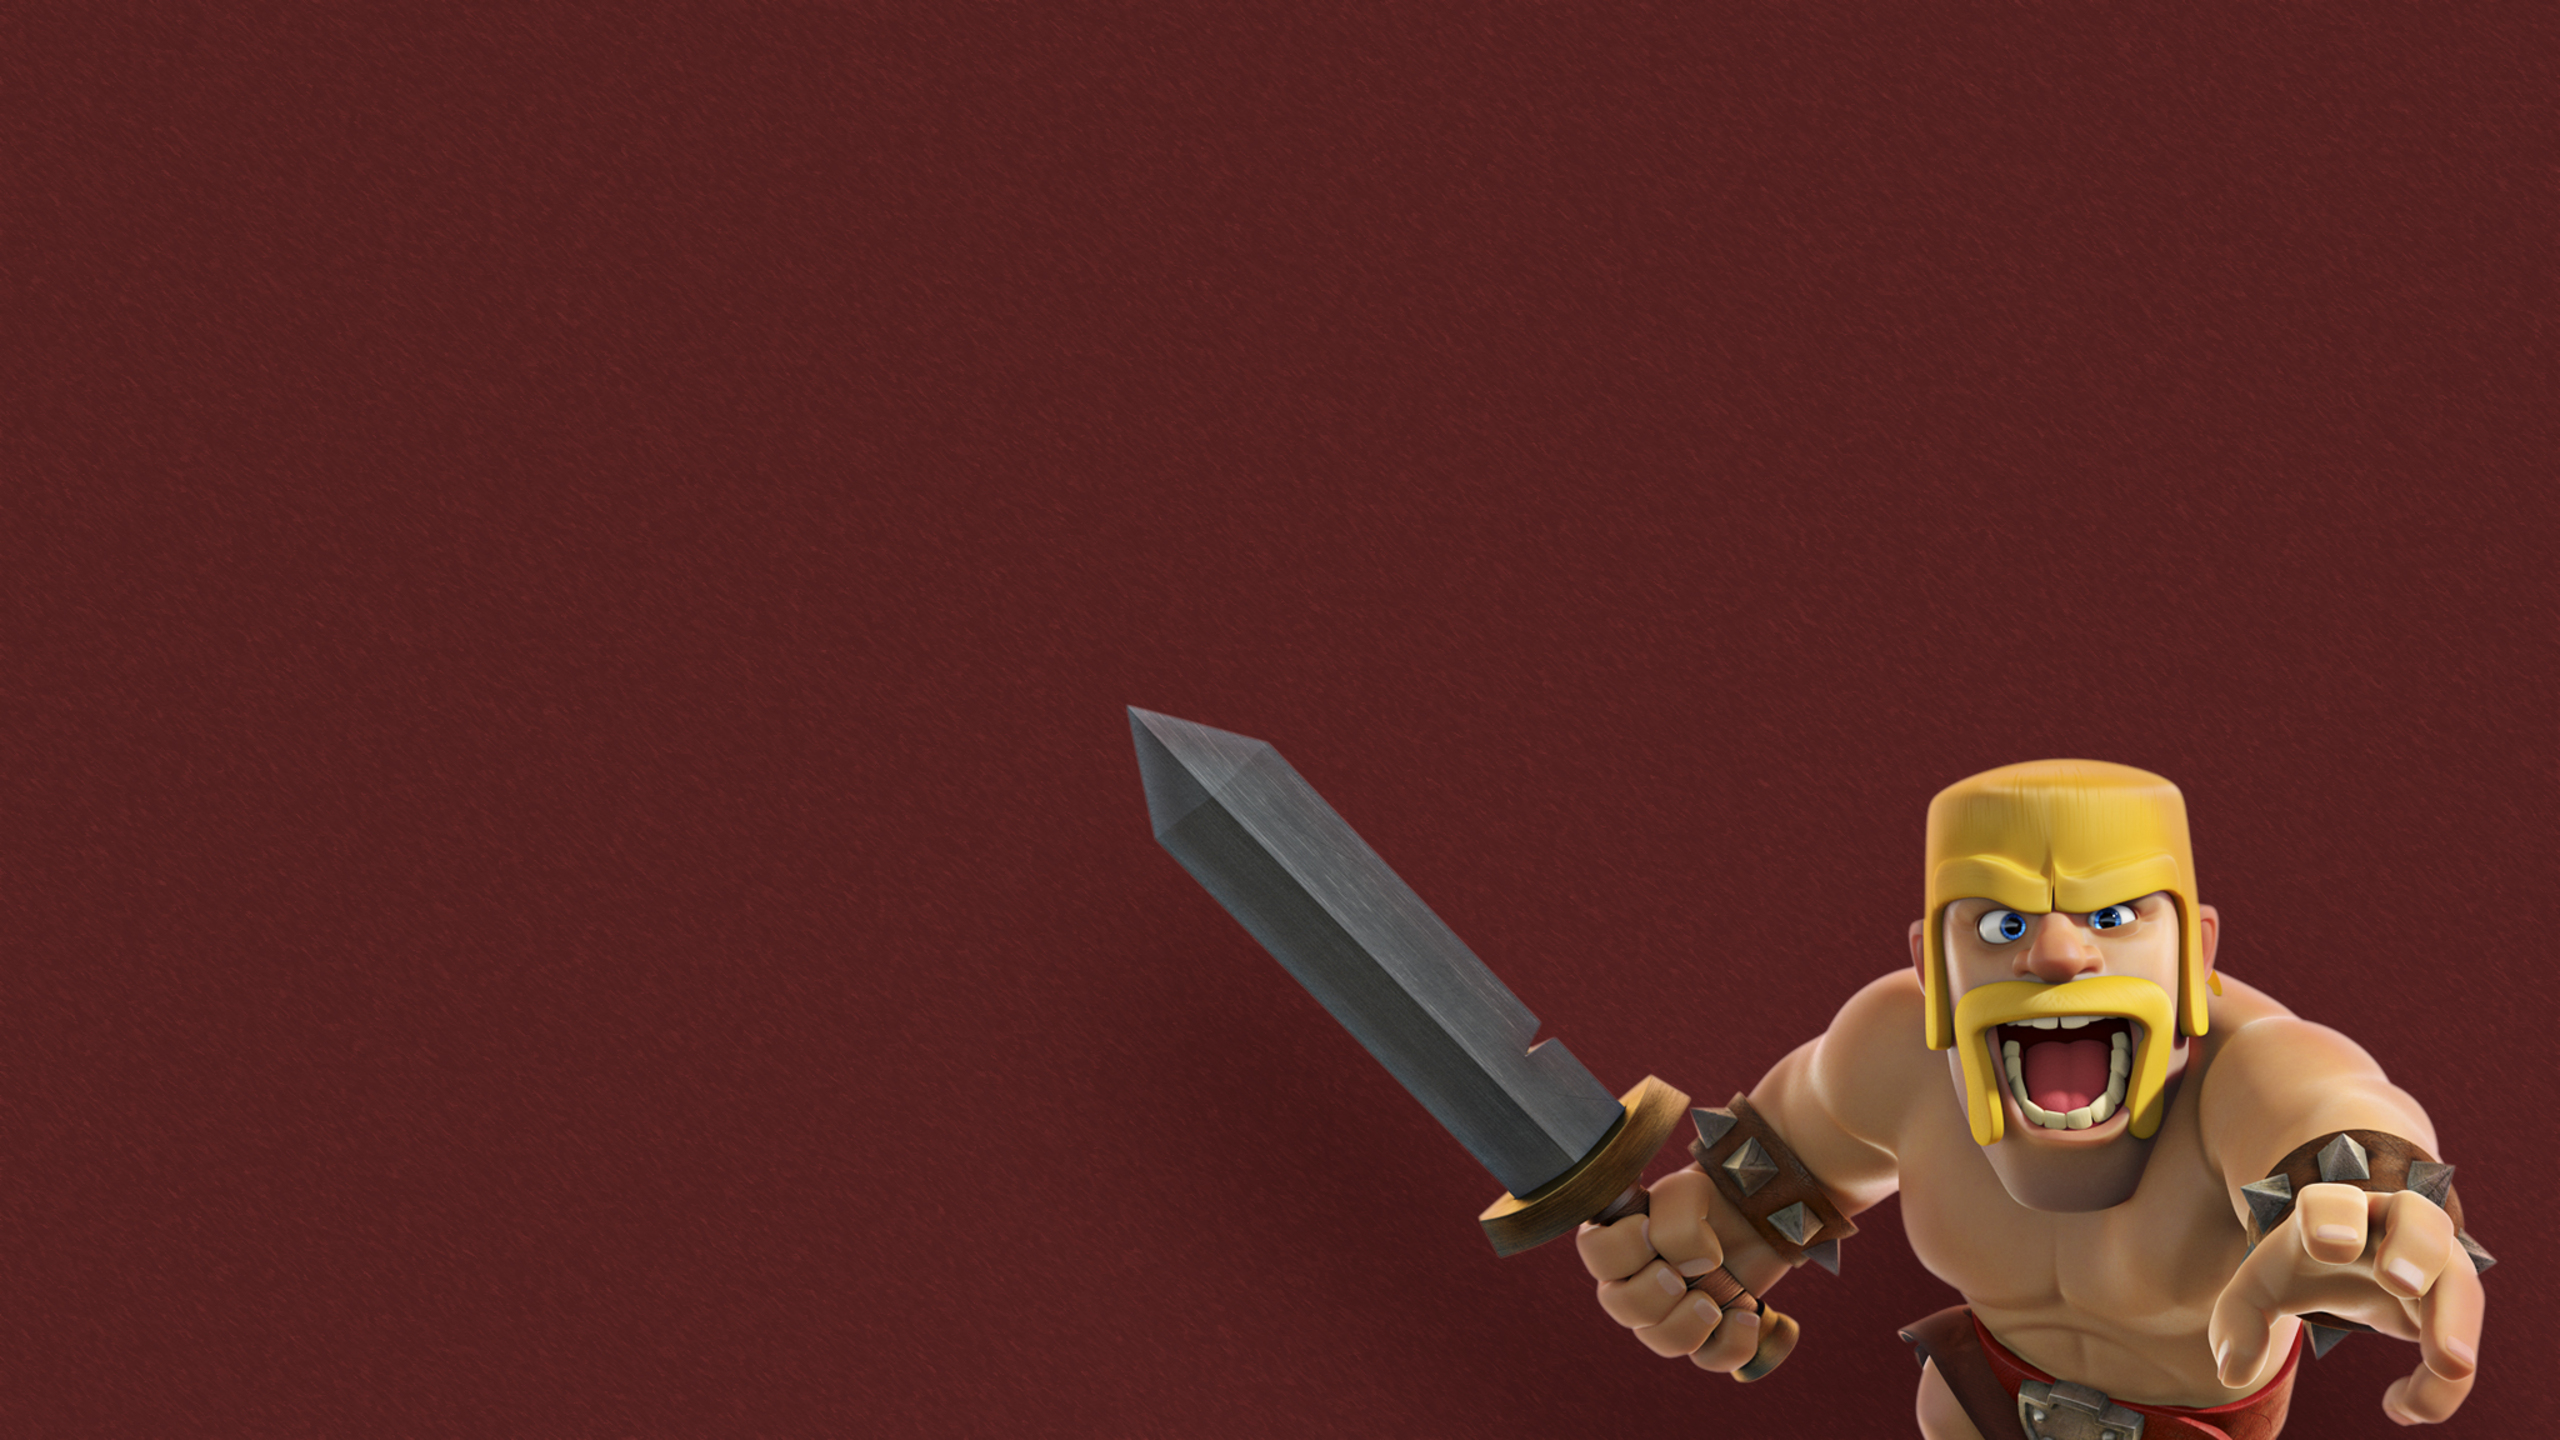 2560x1440 barbarian clash of clans supercell 1440p resolution hd 4k wallpapers images - Clash royale 2560x1440 ...